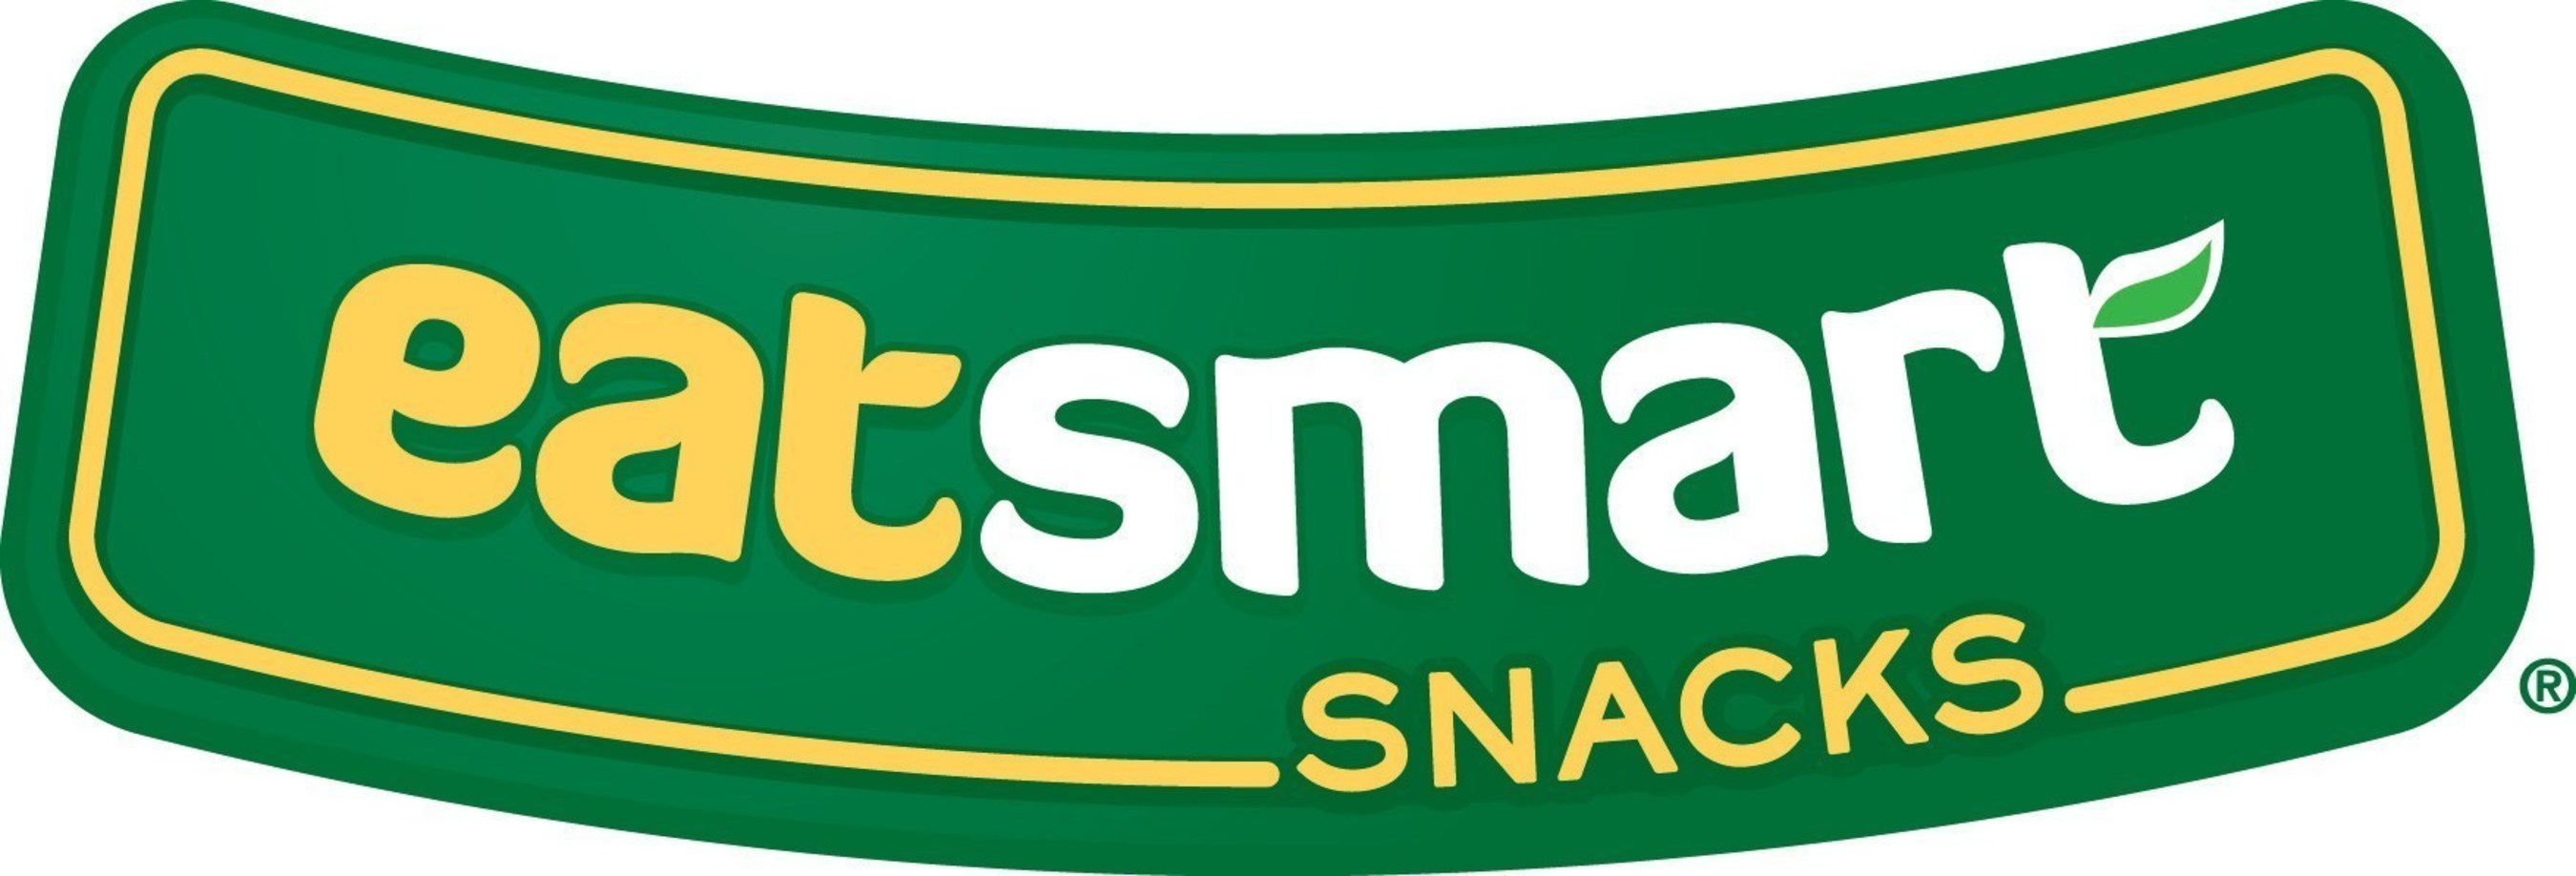 Eatsmart Snacks'' Boldly Debuts Social Mini-Series Featuring Handsome Nature Adventurer